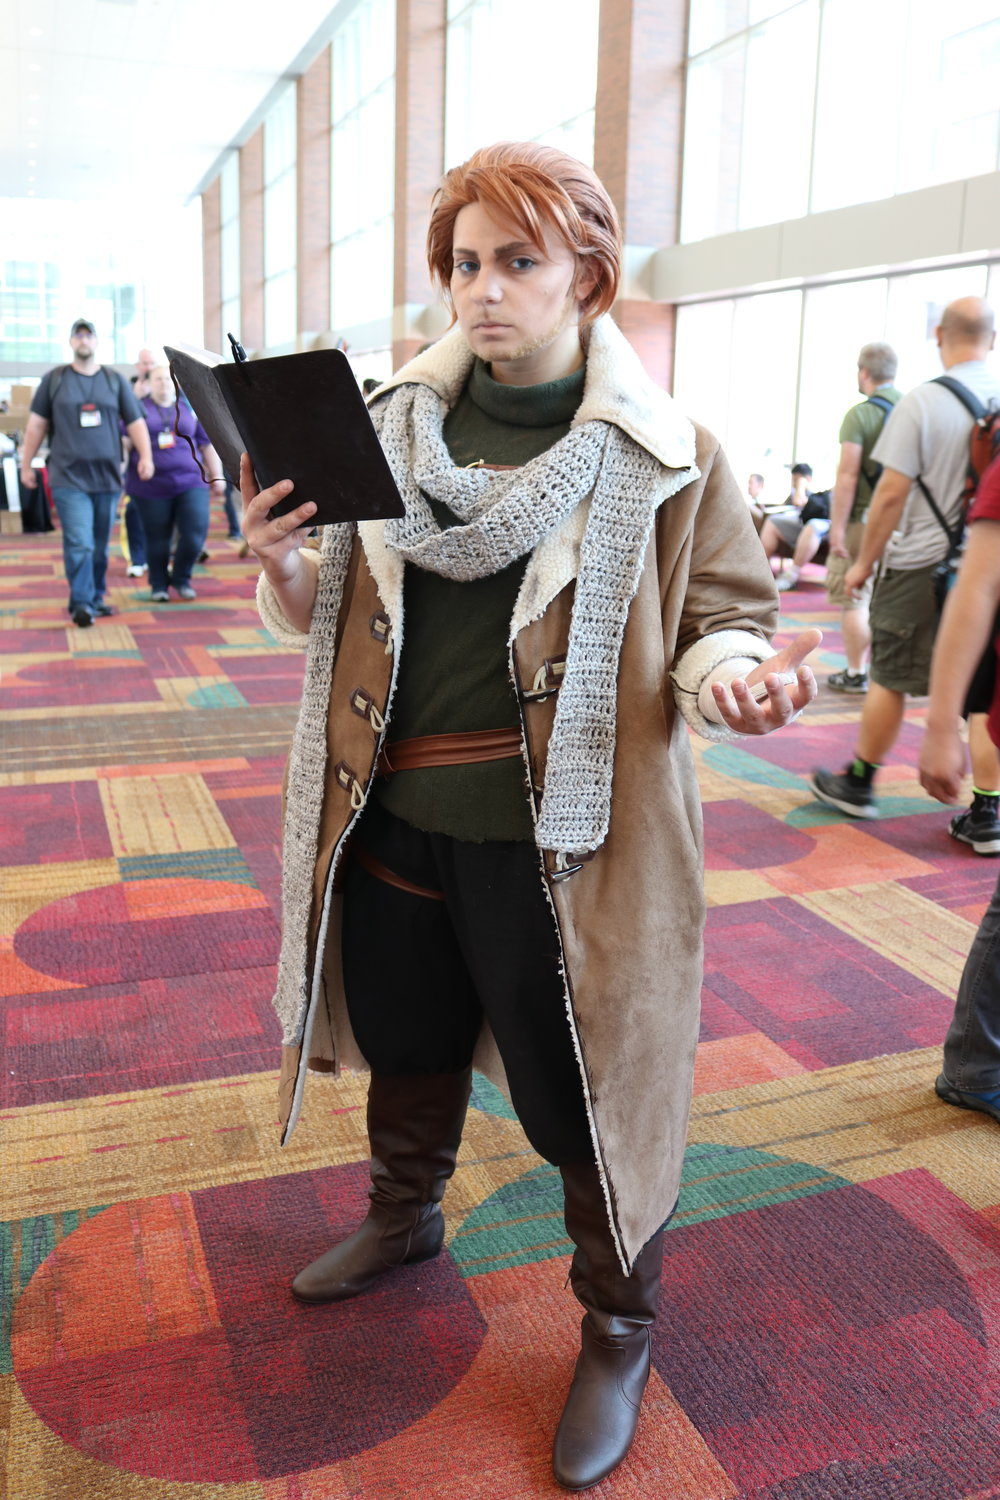 Armaria Cosplay as Caleb from Critical Role